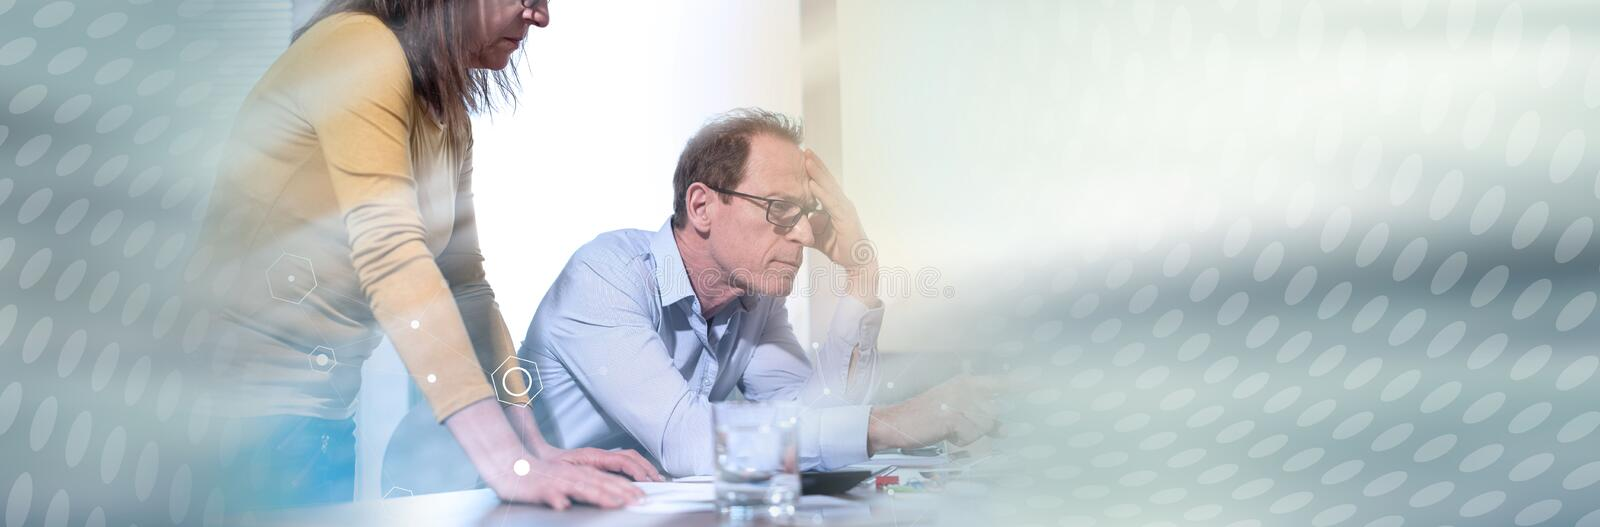 Two mature business people working together, light effect. panoramic banner royalty free stock image